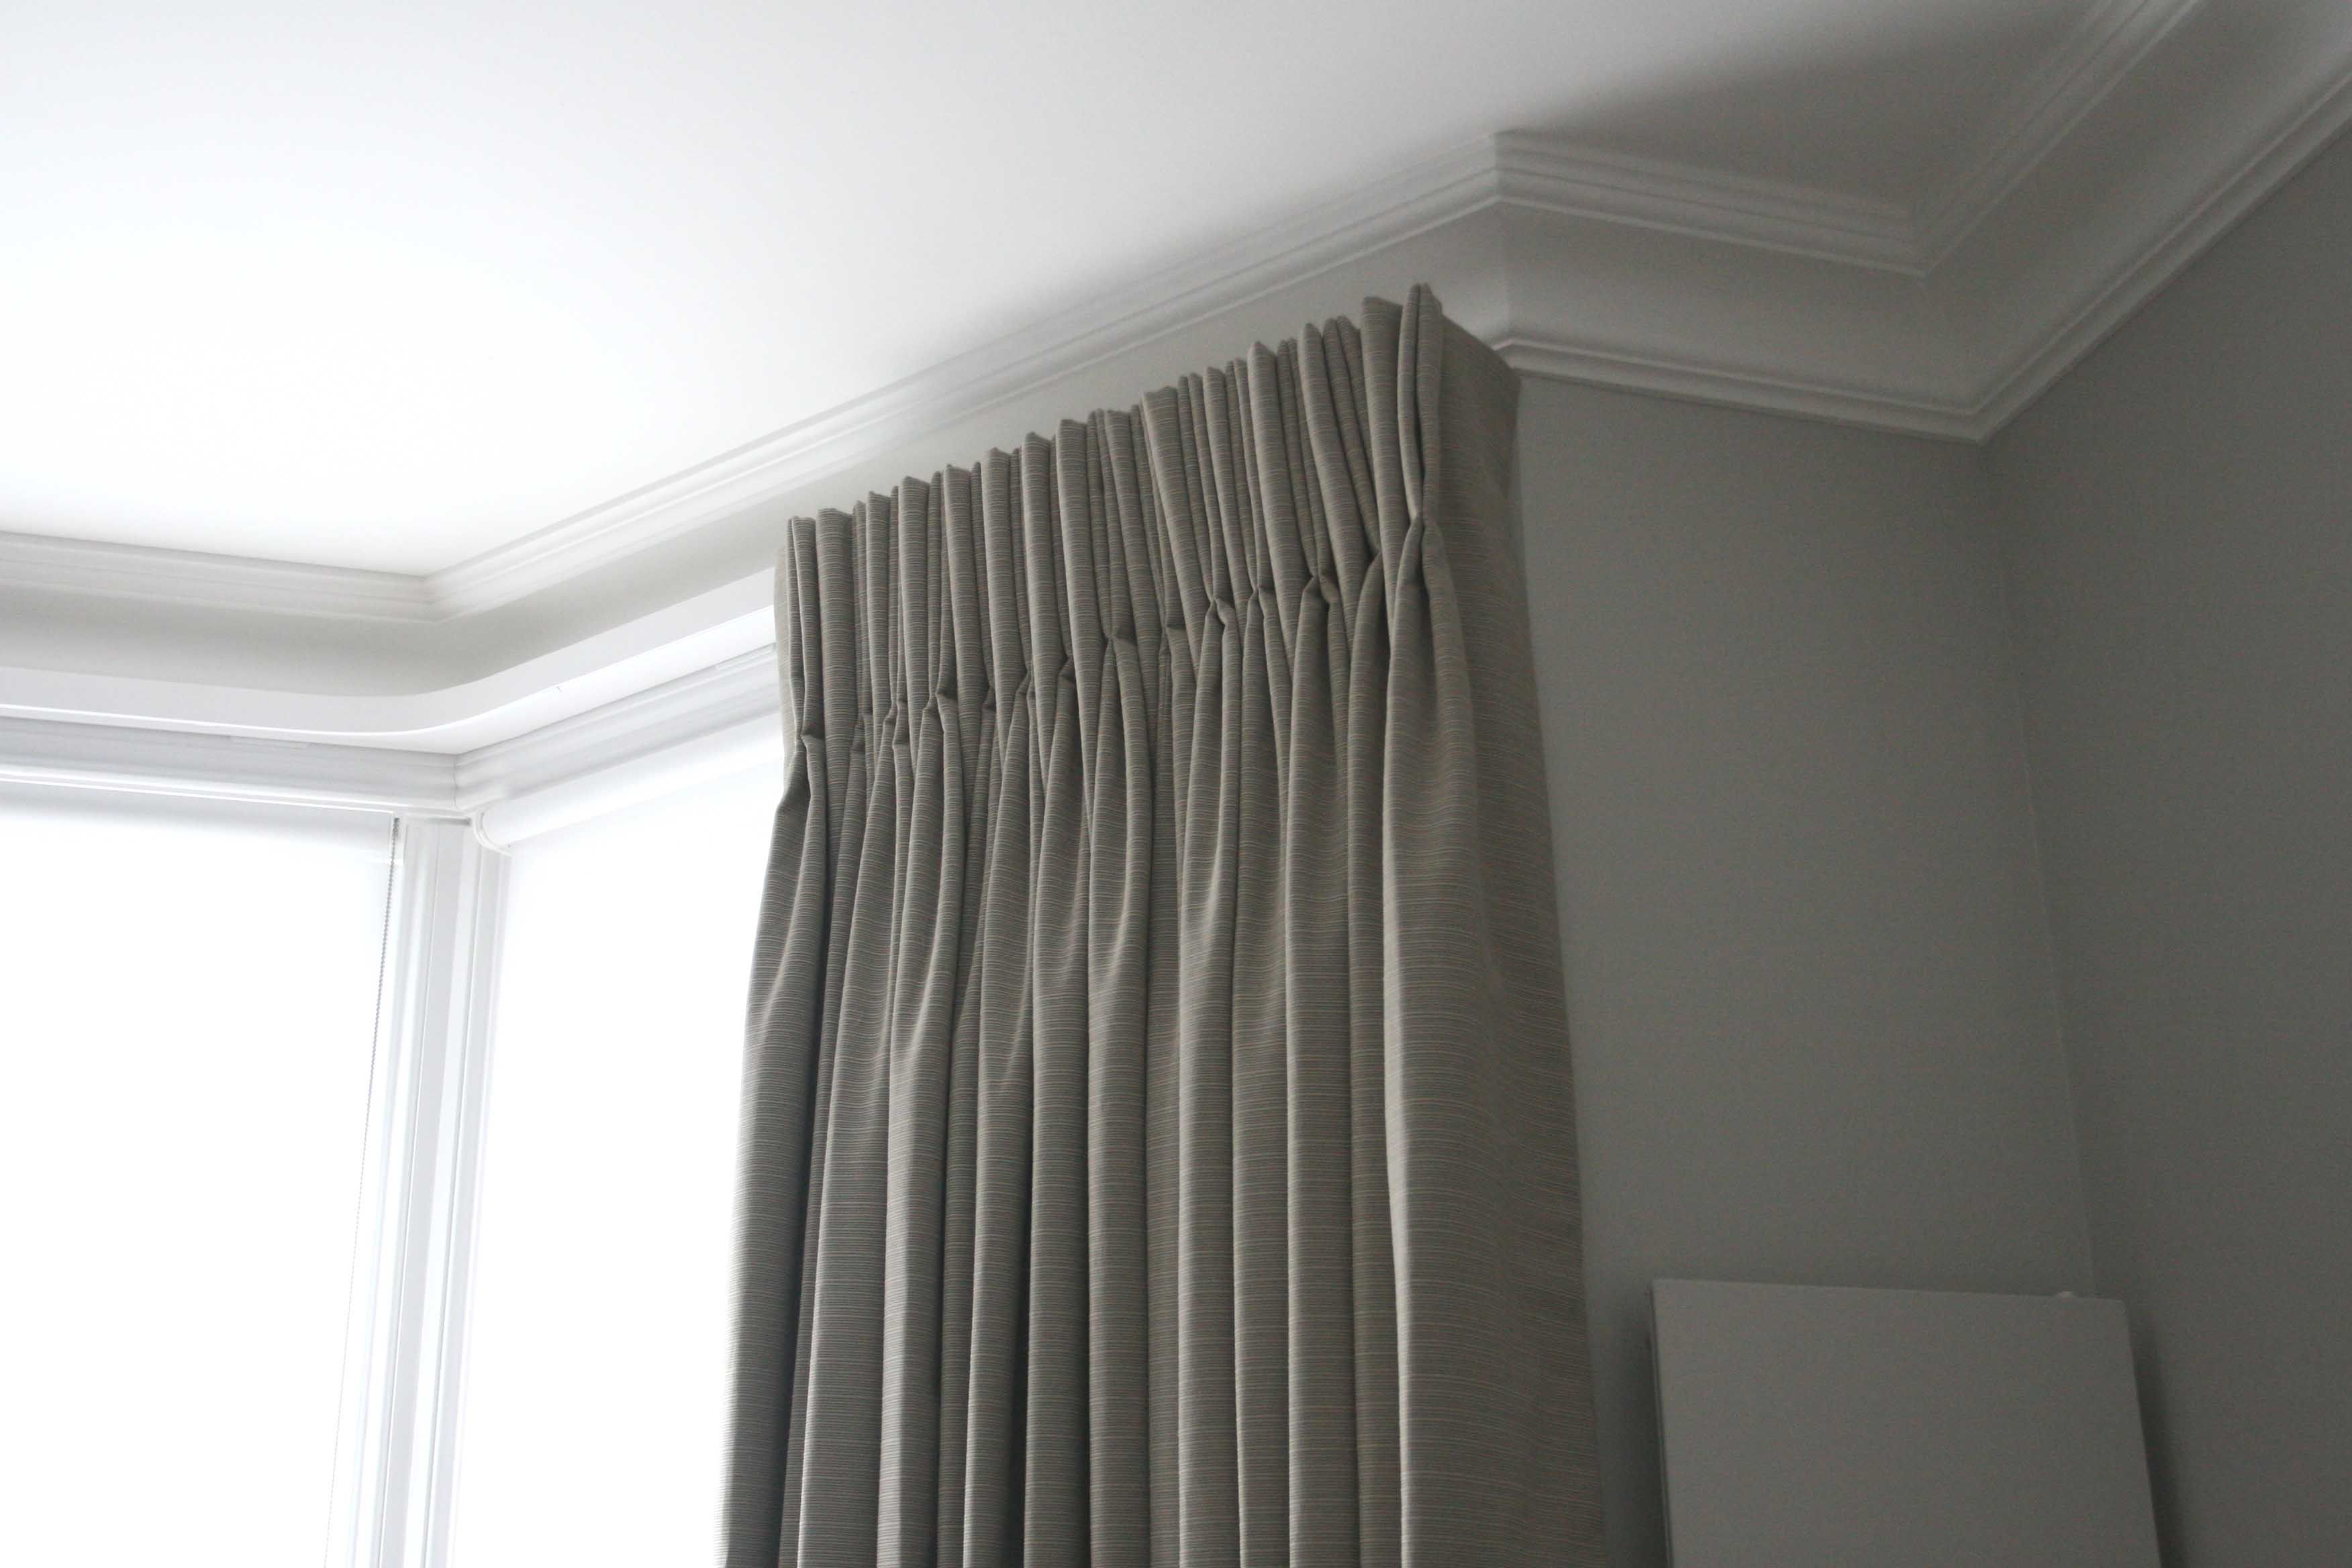 8 inch deep pinch pleat curtains in Harlequin fabric, lined and ... for Pencil Pleat Curtains On Track  61obs